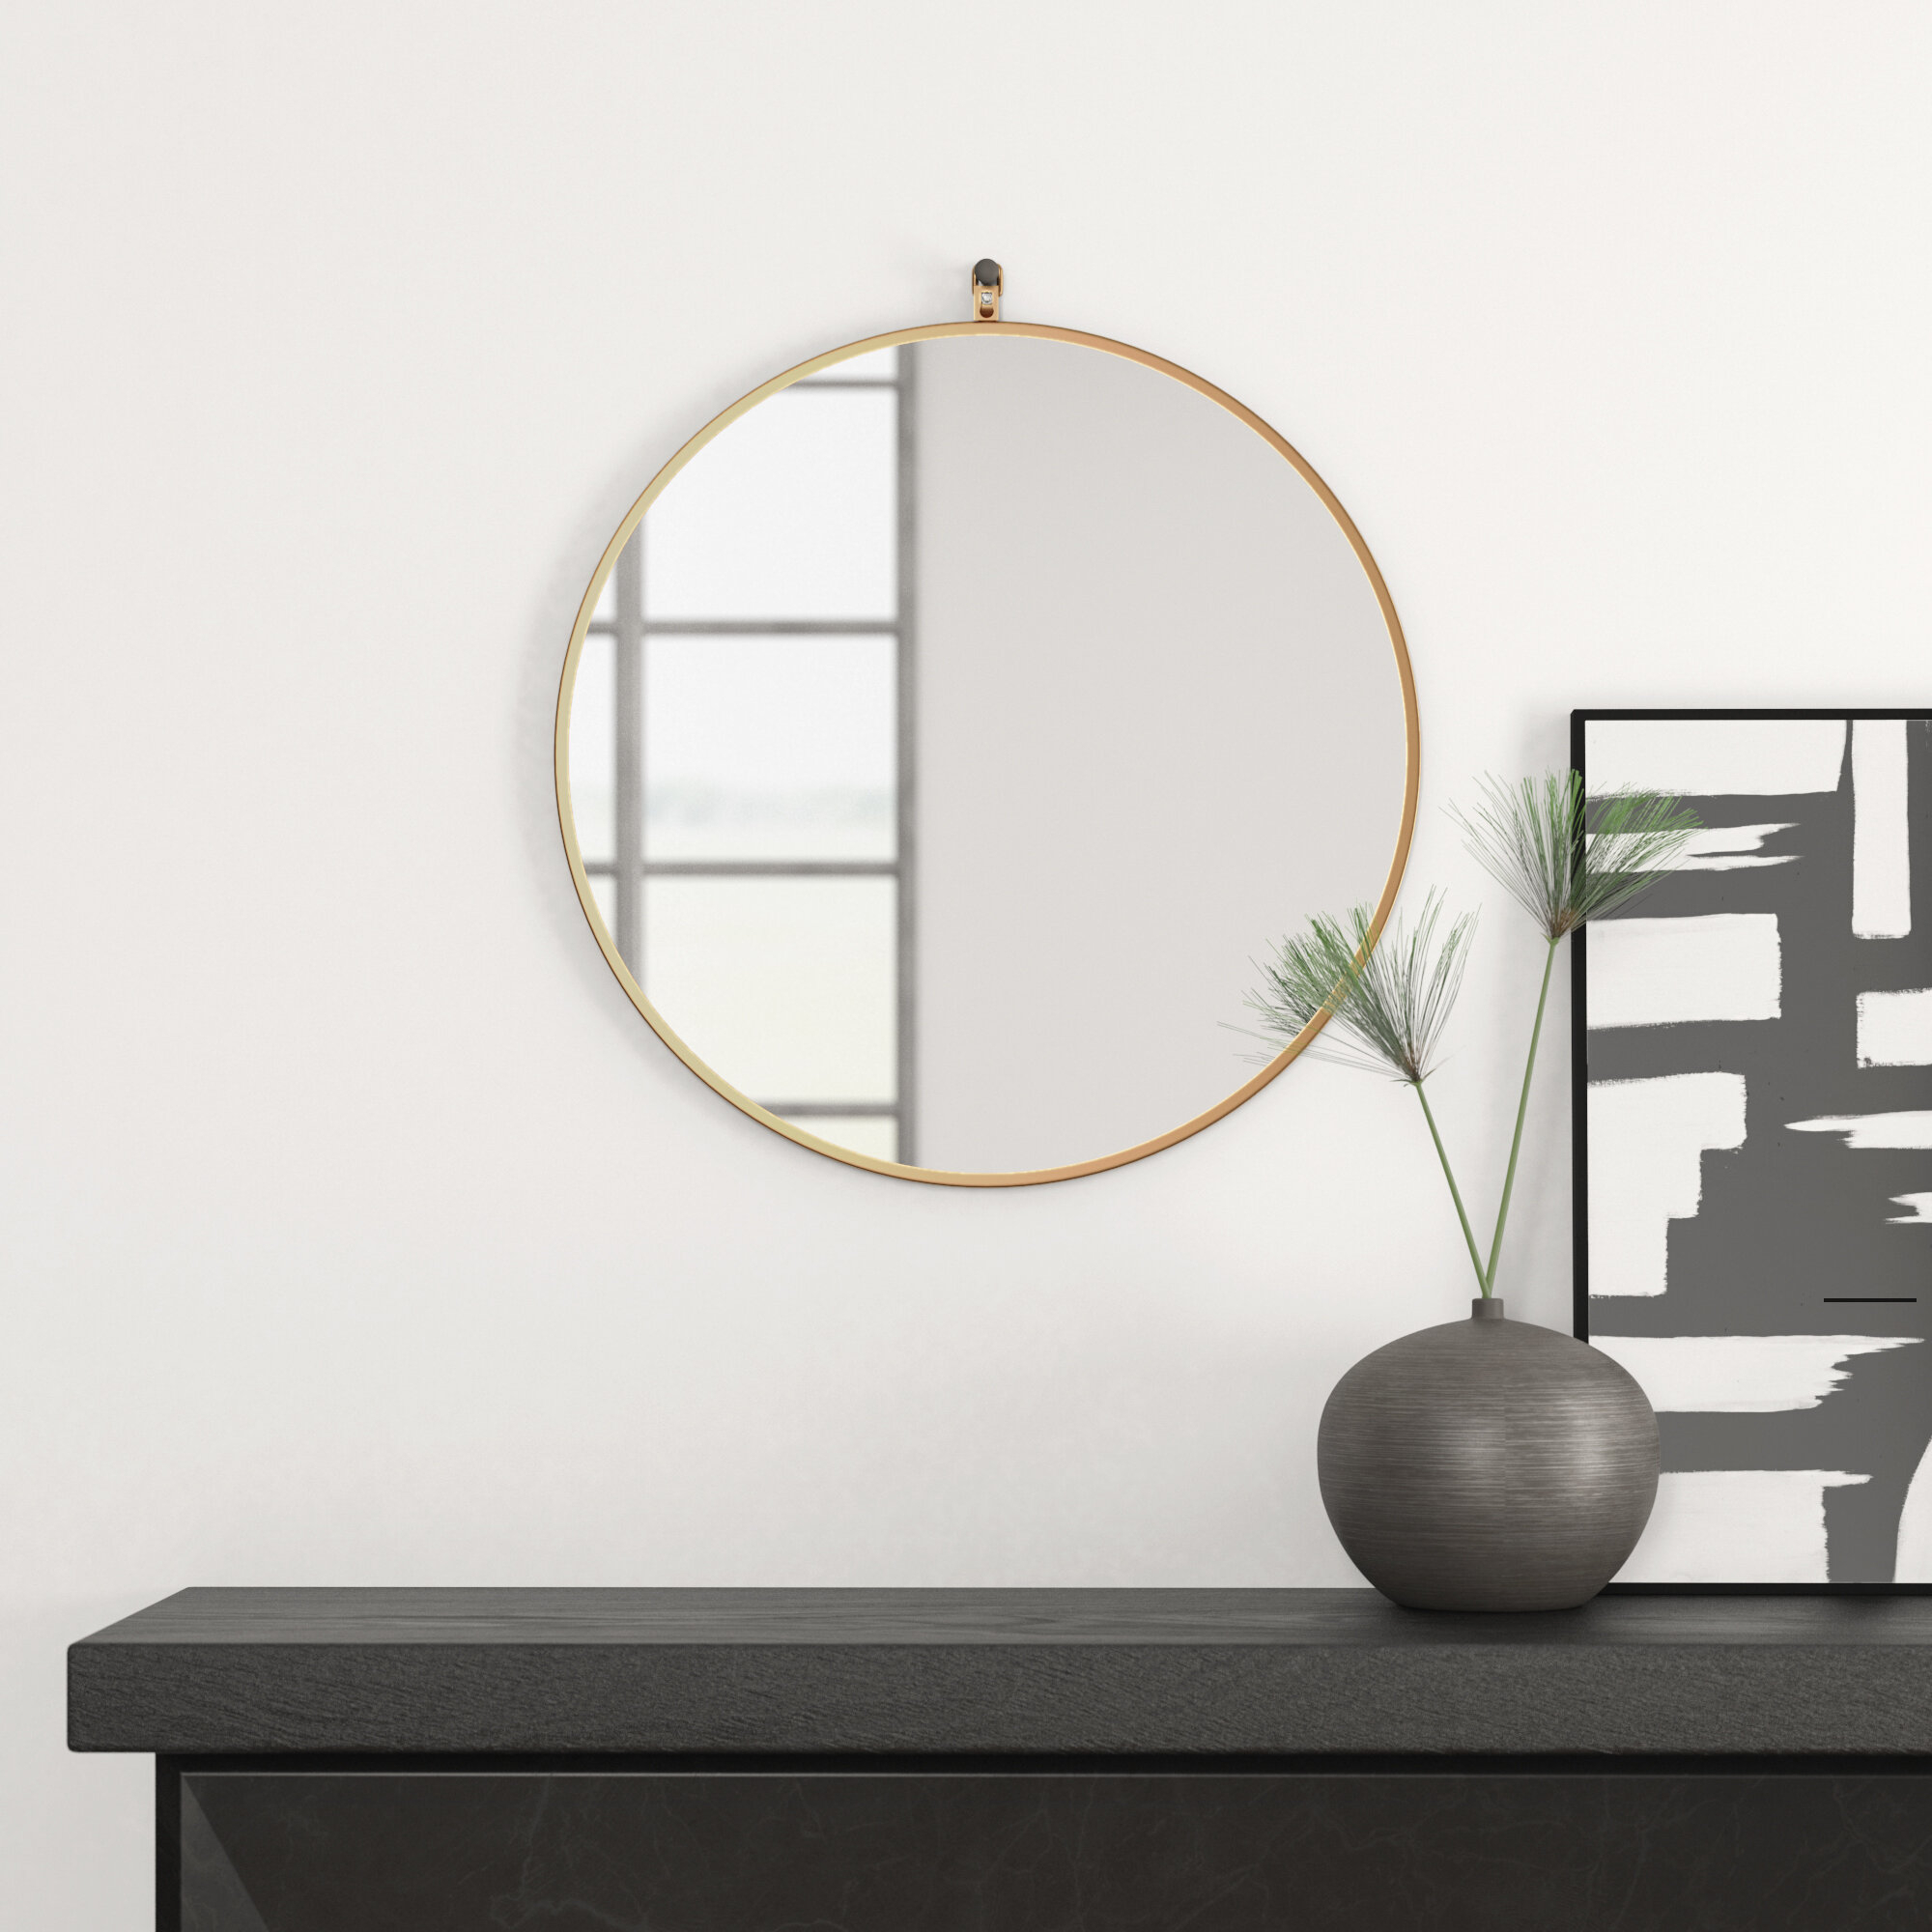 Yedinak Modern Distressed Accent Mirror Intended For Yedinak Modern Distressed Accent Mirrors (Photo 1 of 30)